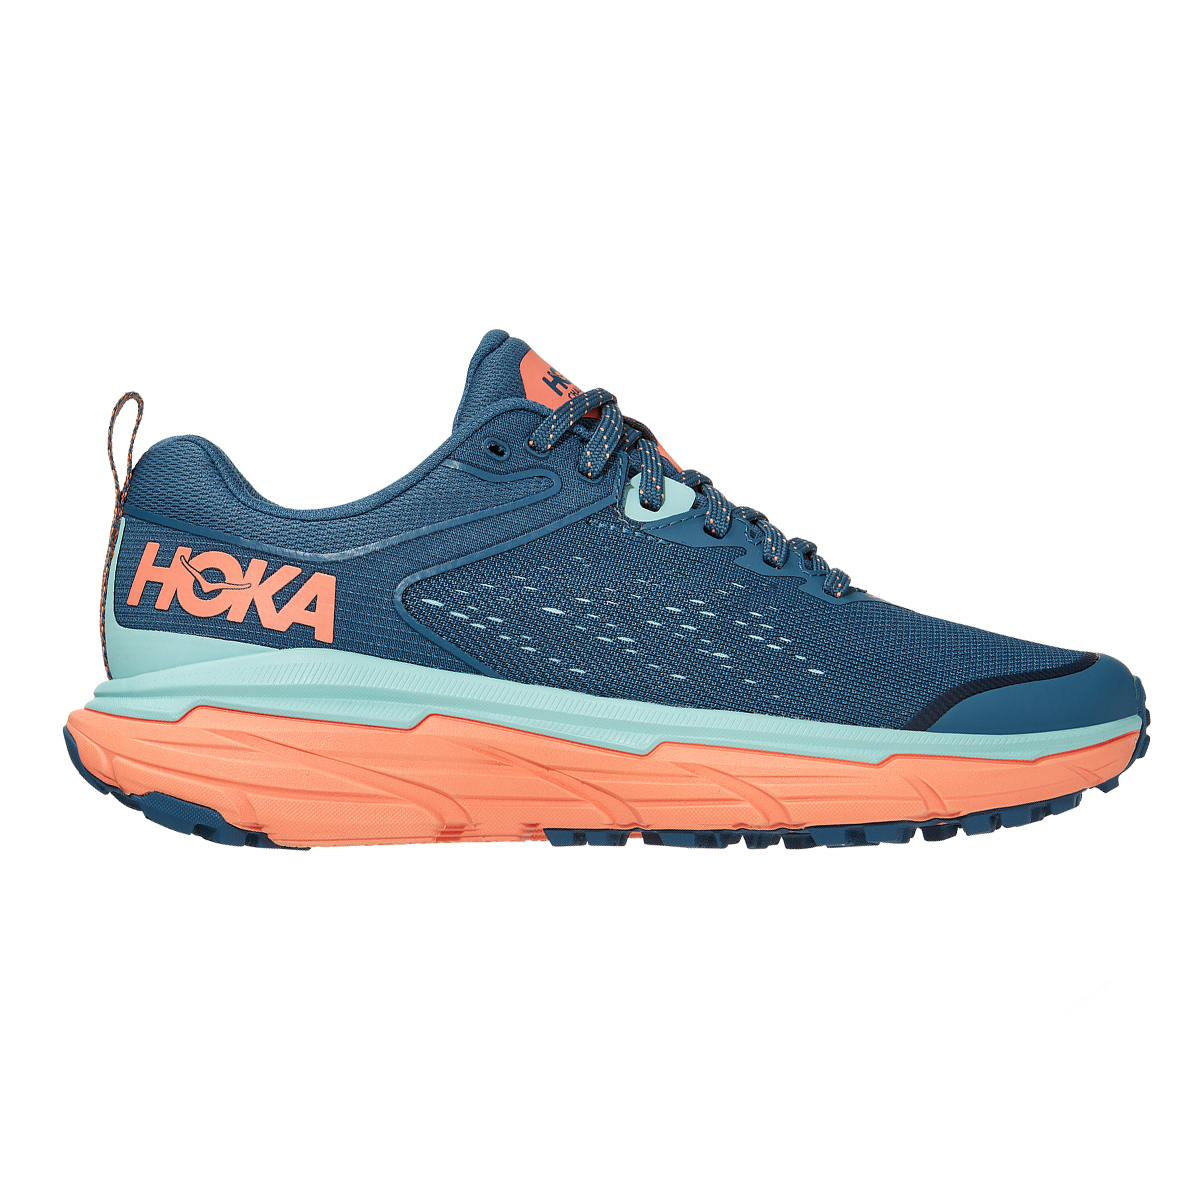 Women's Hoka One One Challenger ATR 6 Trail Running Shoe - Color: Real Teal / Cantaloupe - Size: 5 - Width: Regular, Real Teal / Cantaloupe, large, image 1